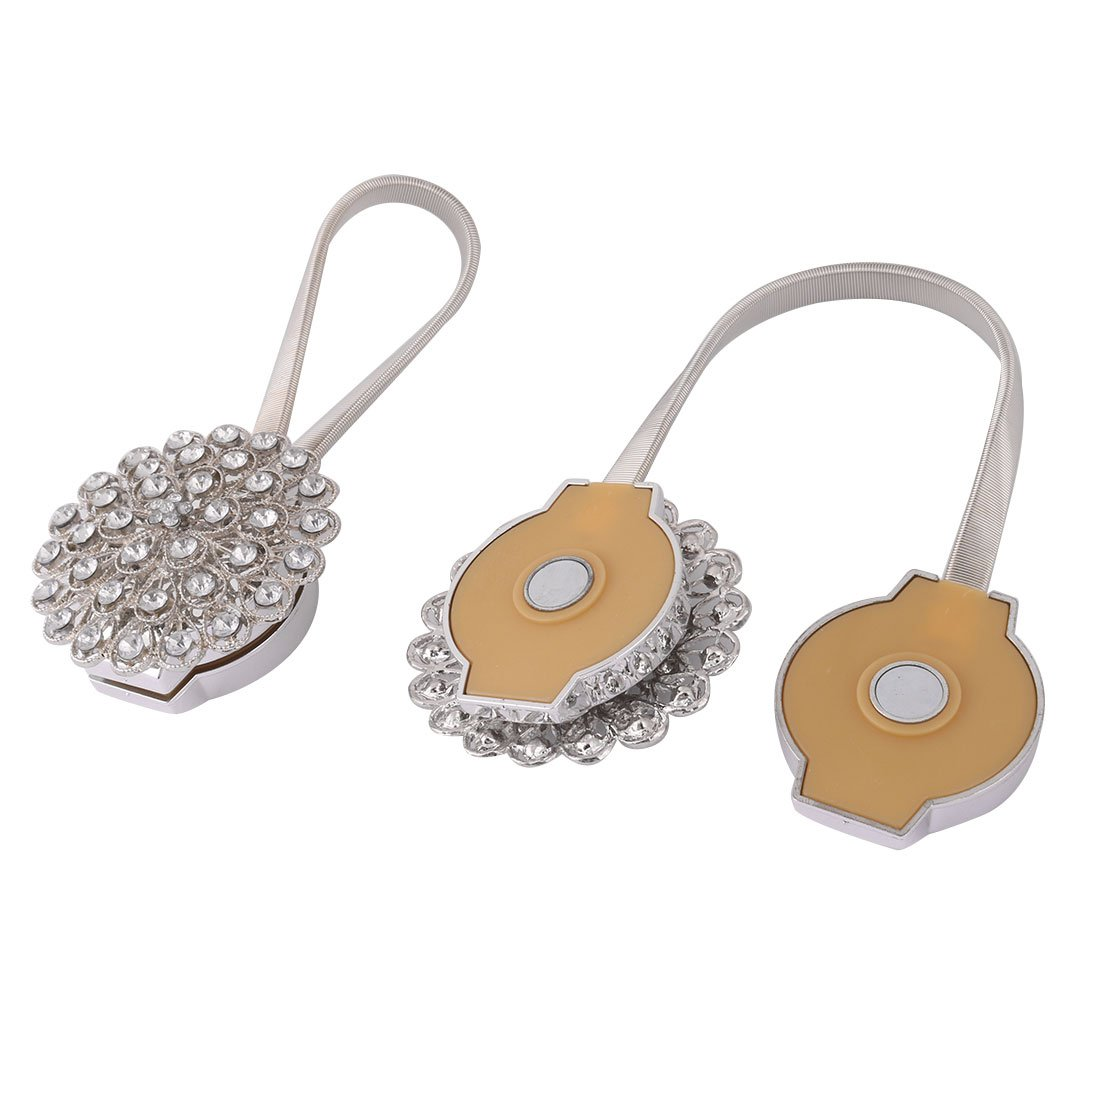 uxcell Metal Hotel Flower Design Magnetic Curtain Clip Tie Back Holdback 2 Pcs Silver Tone